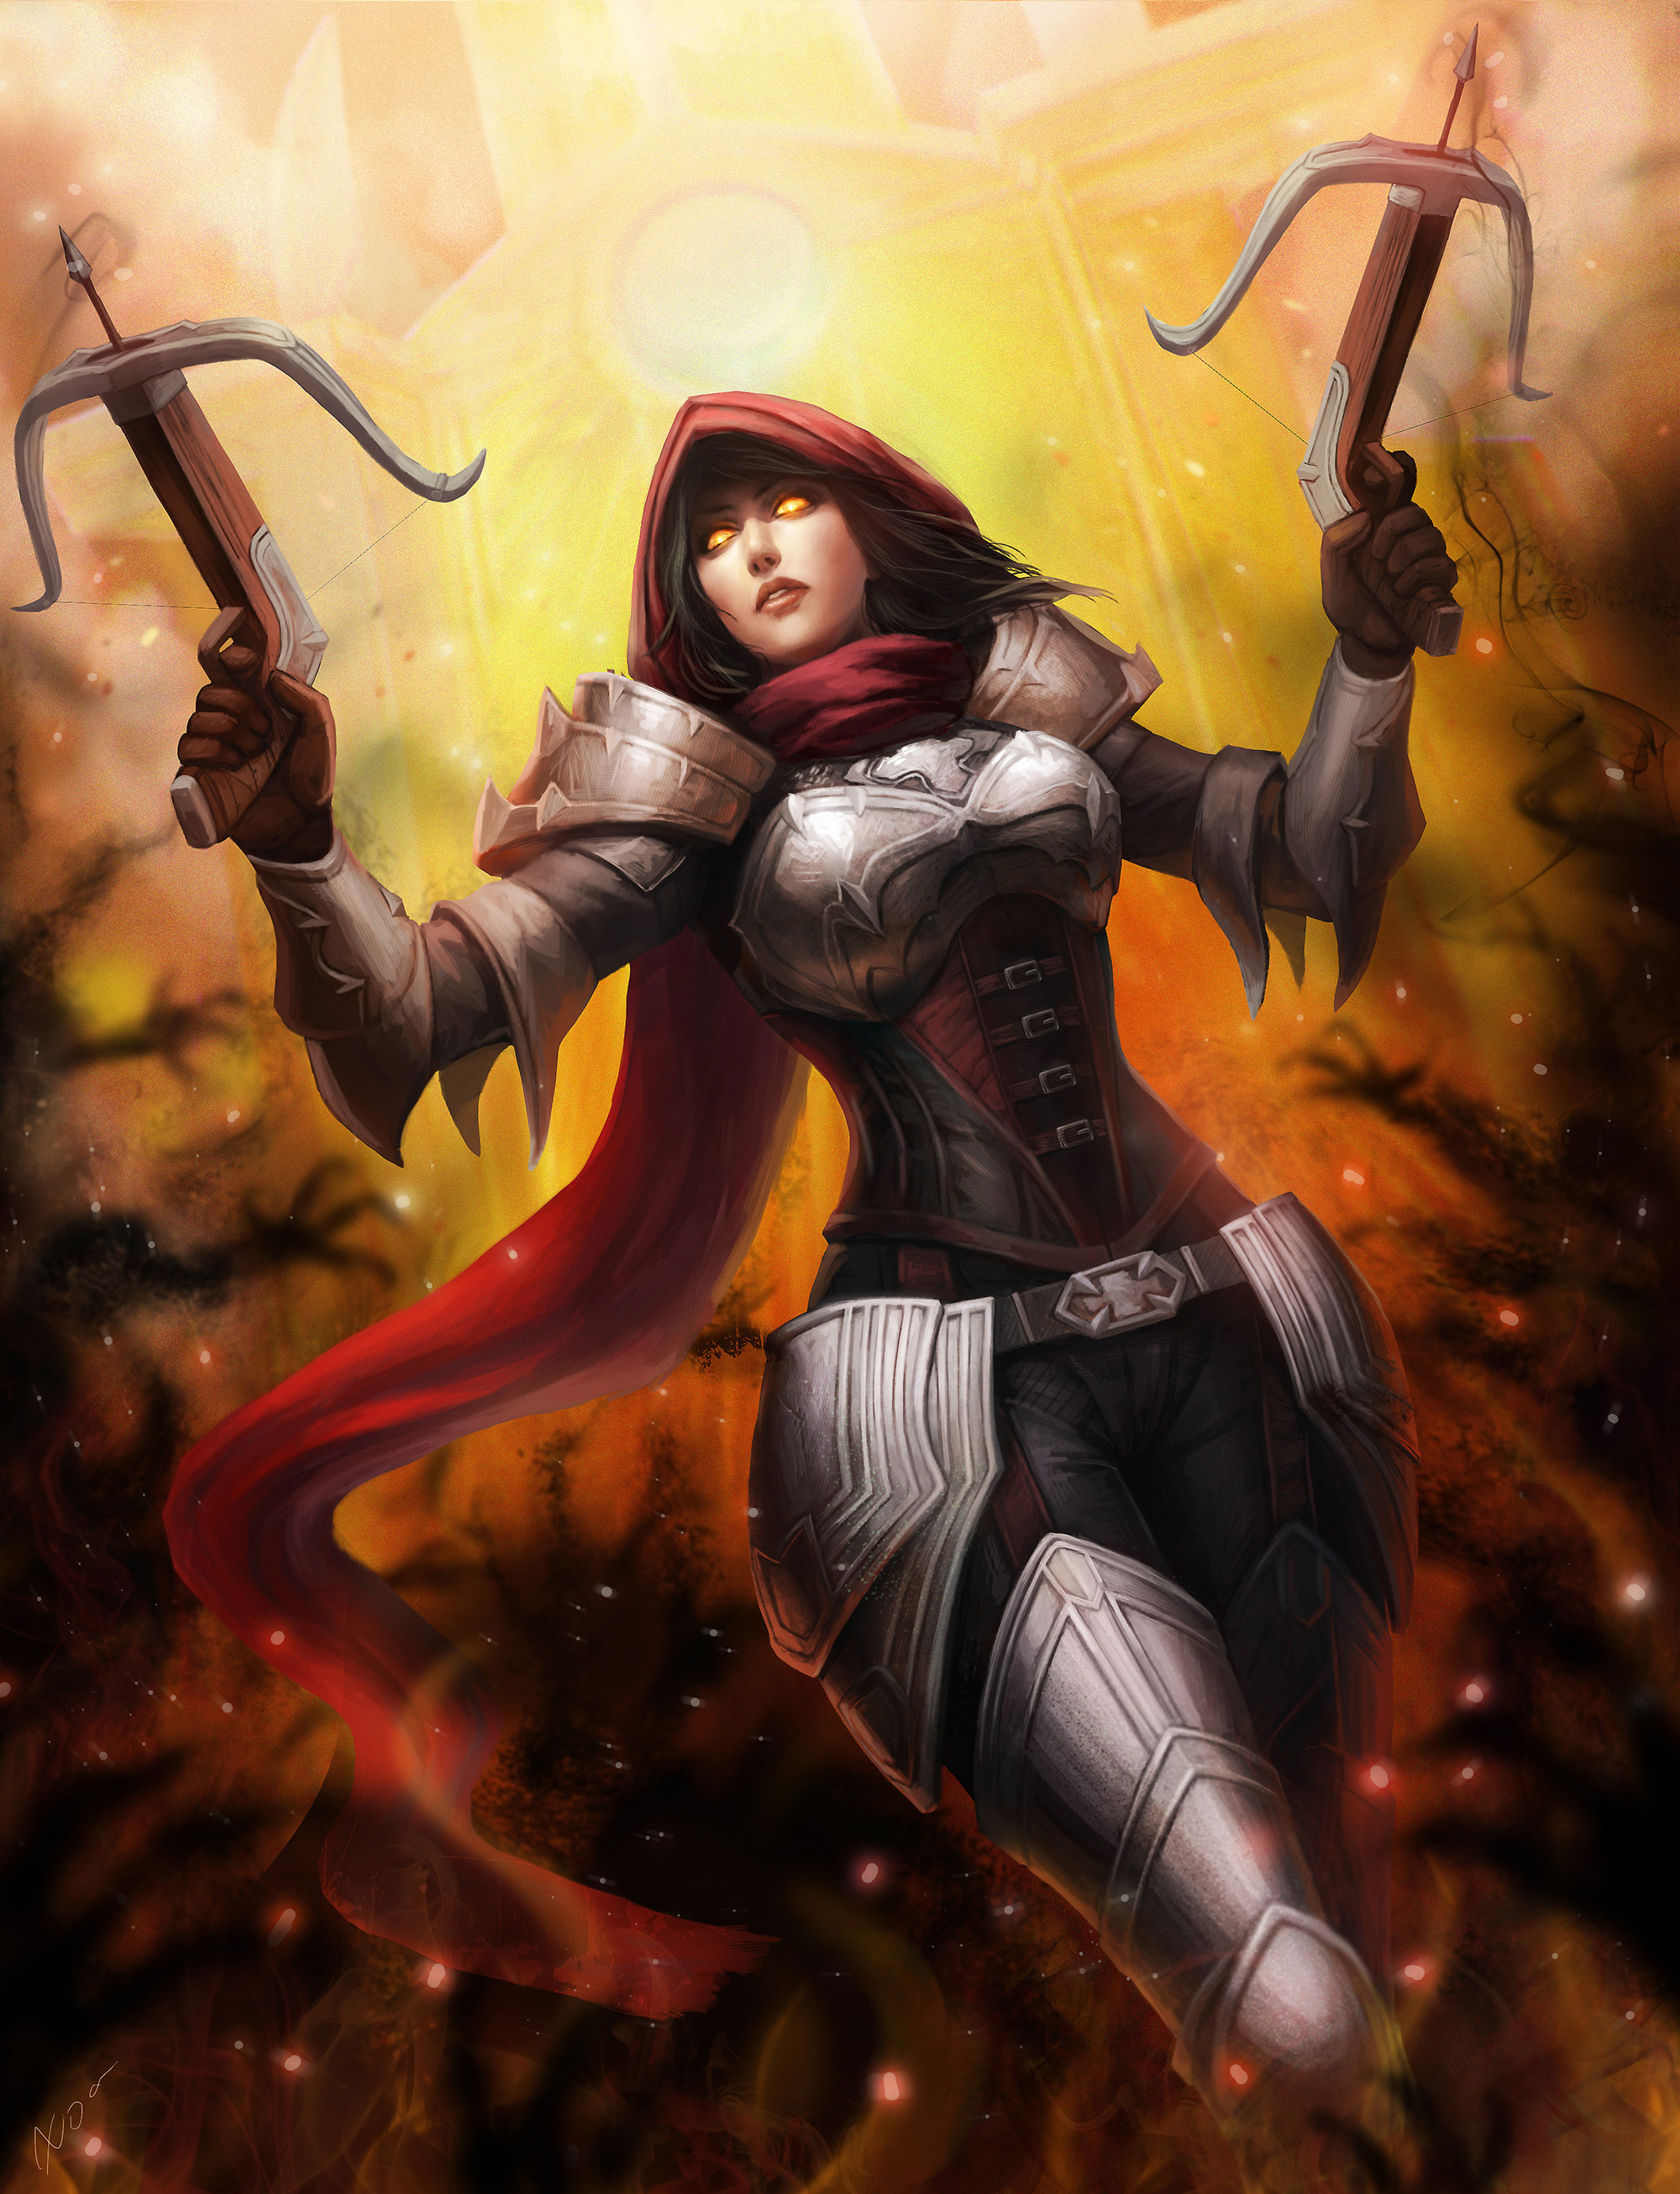 Diablo 3 :Demon Hunter by chalii on DeviantArt